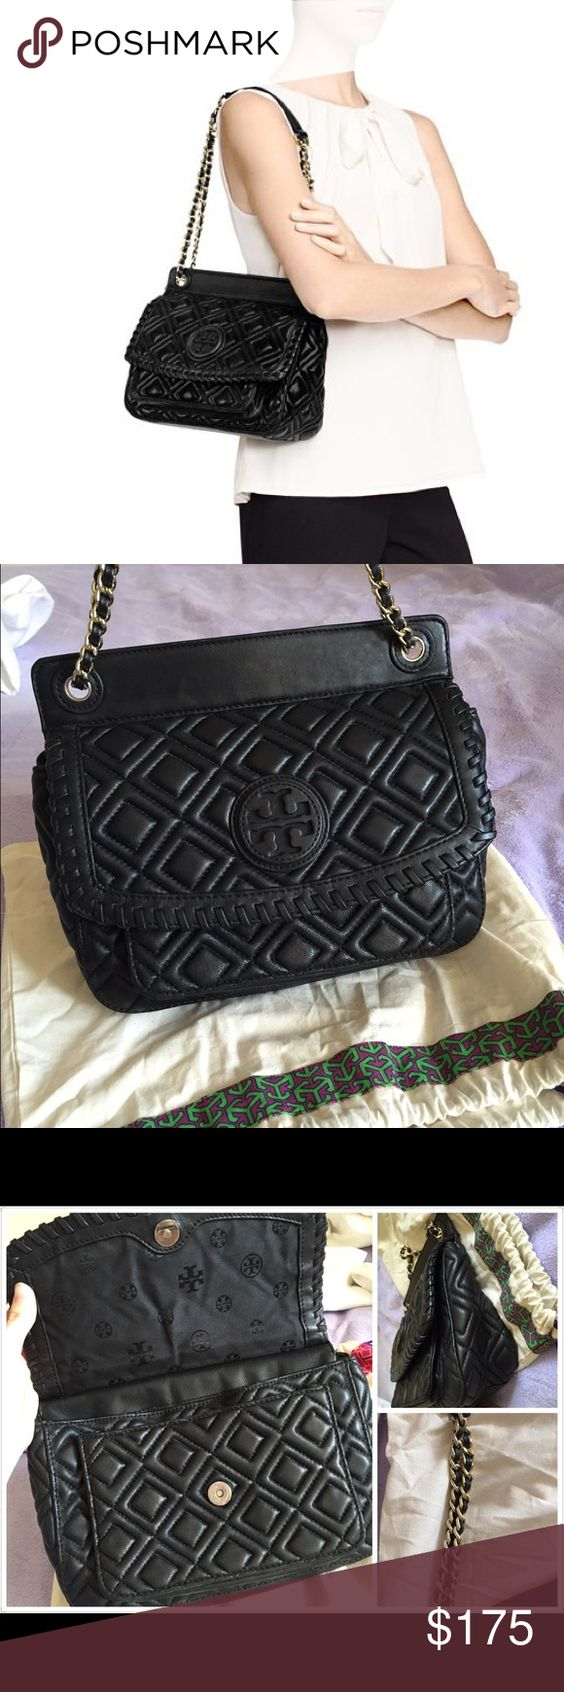 """Get $25 off❗️Marion quilted small shoulder bag Quilted leather. Flap front with magnetic snap closure. Exterior pocket under front flap. Interior zipper pocket and two open pockets. Adjustable leather and chain shoulder strap with 18"""" (47 cm) drop when fully extended. Height: 8"""" (21 cm) Length: 10"""" (27 cm) Depth: 3.5"""" (9 cm)  Color is Tiger Eye  show some wear on cornors. Overall in good condition.  No trades thanks. Will do $25 less on M Tory Burch Bags Shoulder Bags"""